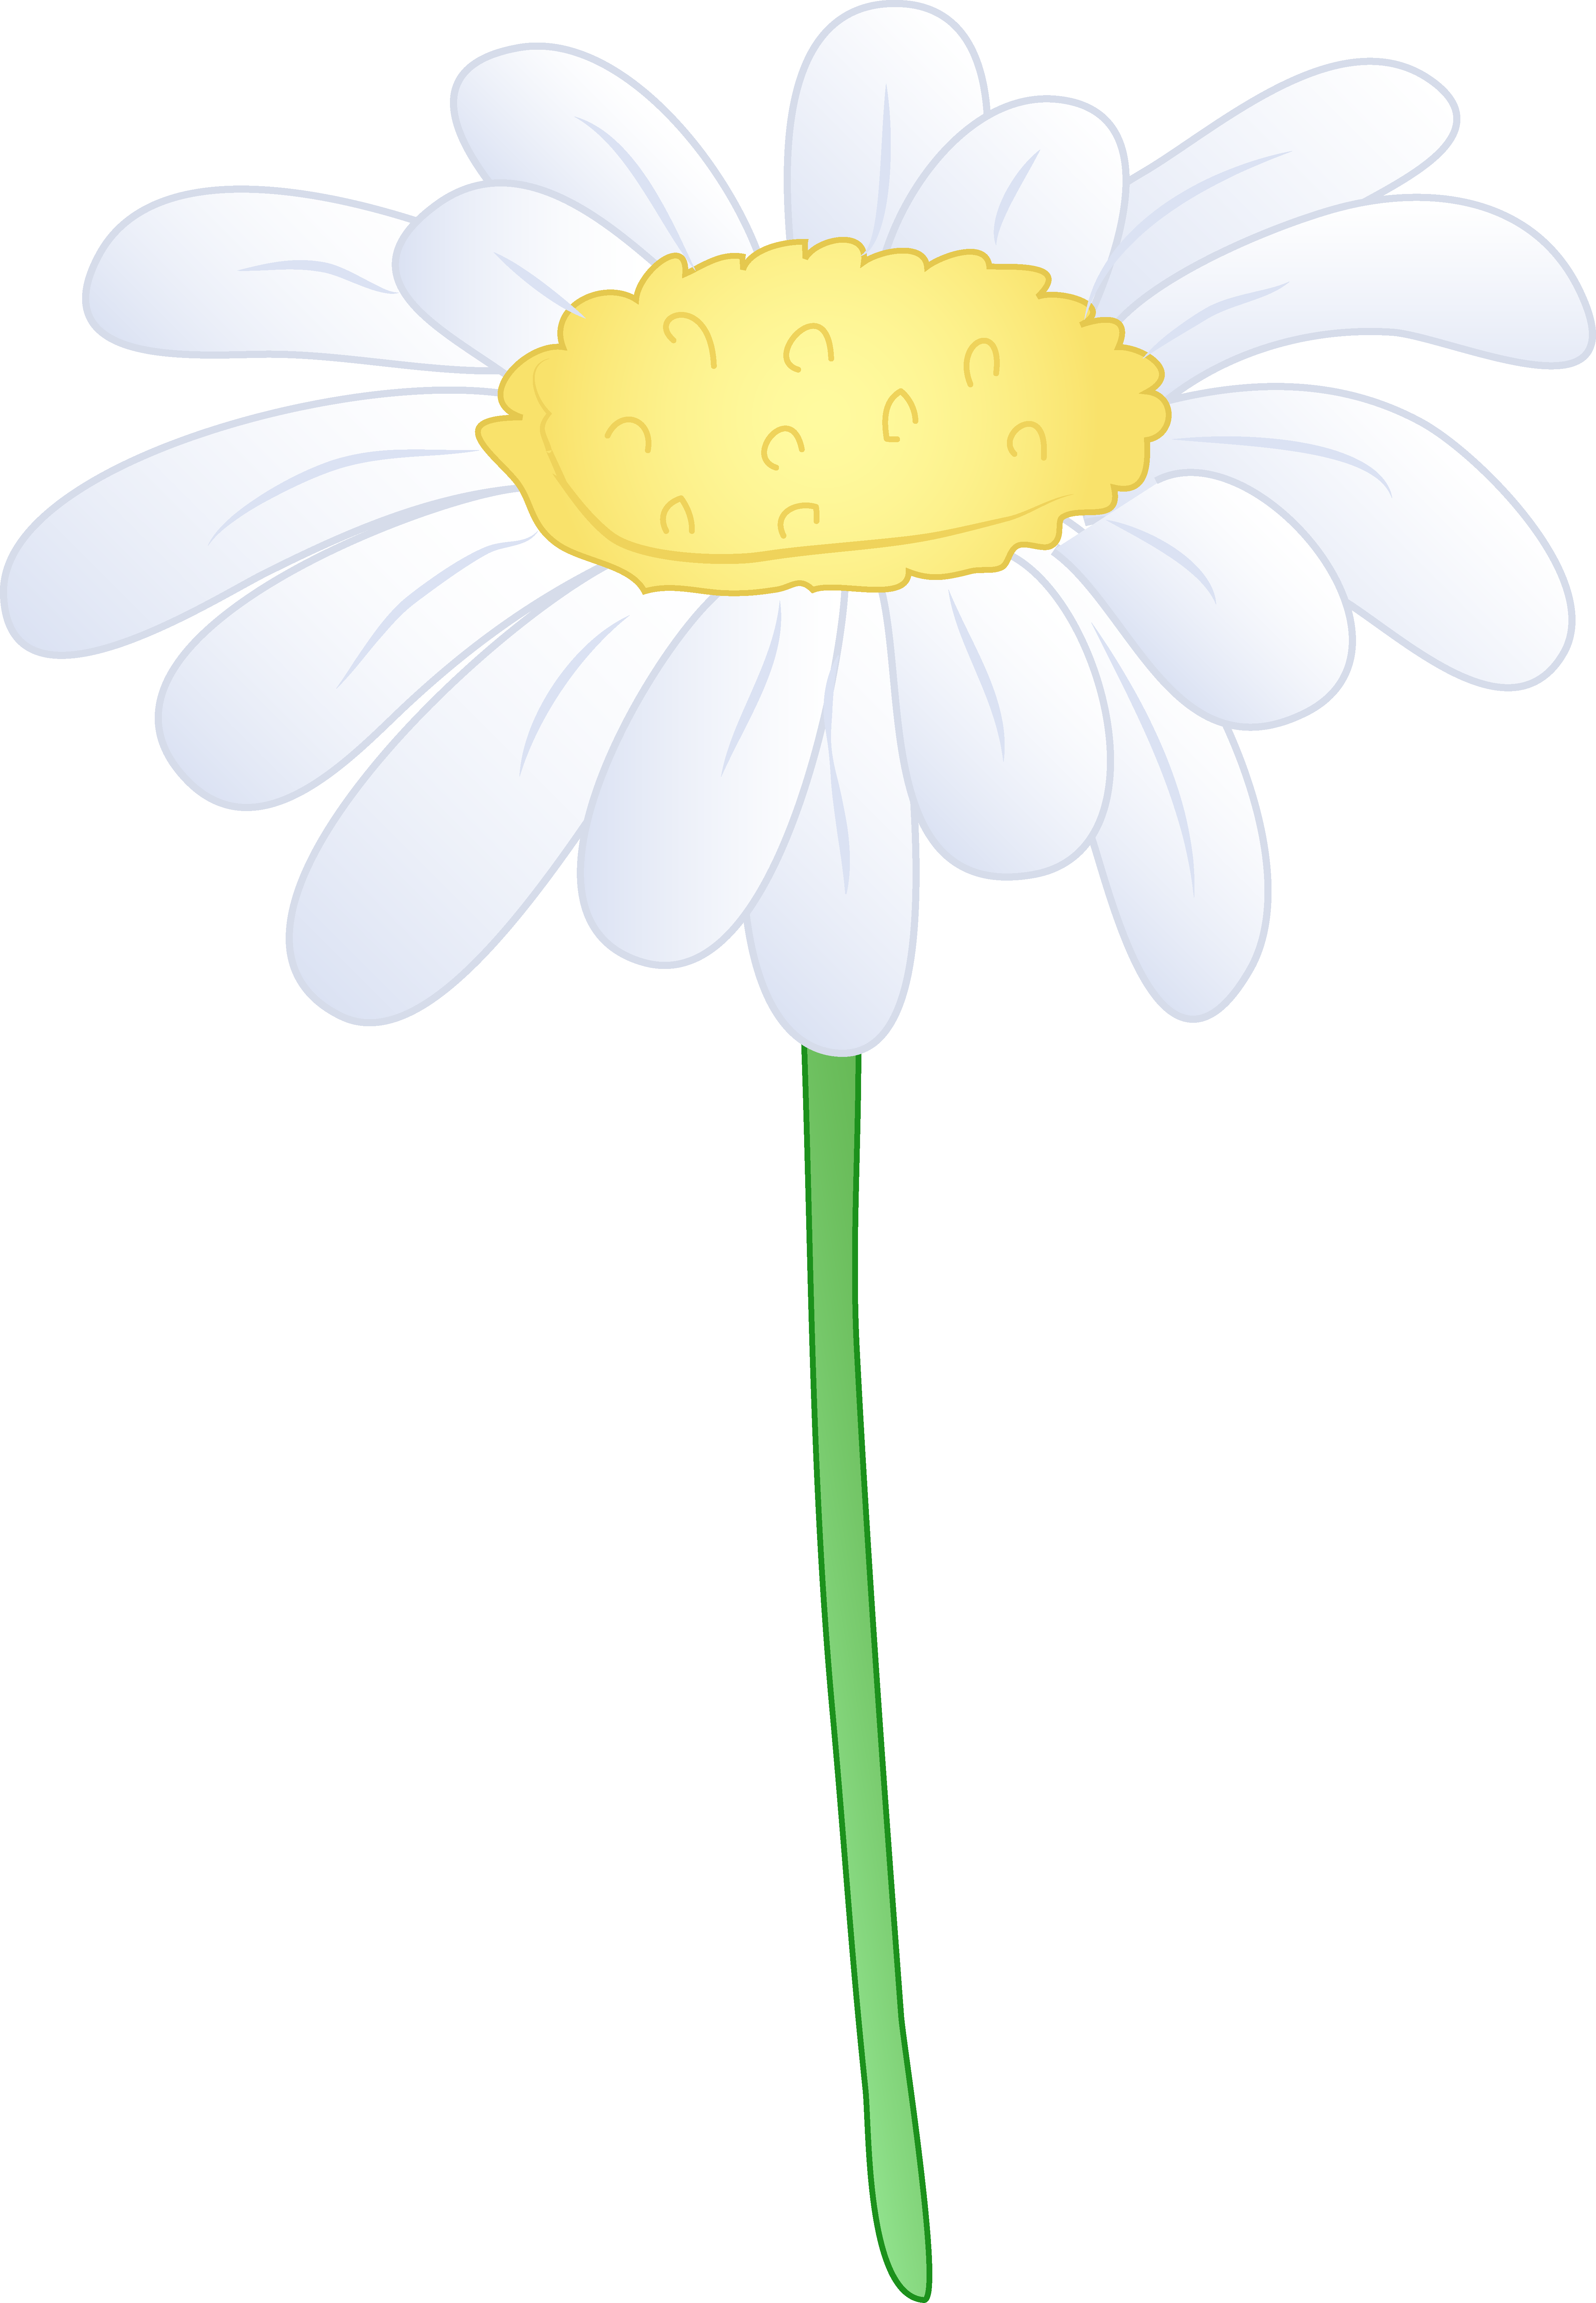 Gerber daisy clipart at getdrawings free for personal use 4682x6755 single white daisy flower free clip art izmirmasajfo